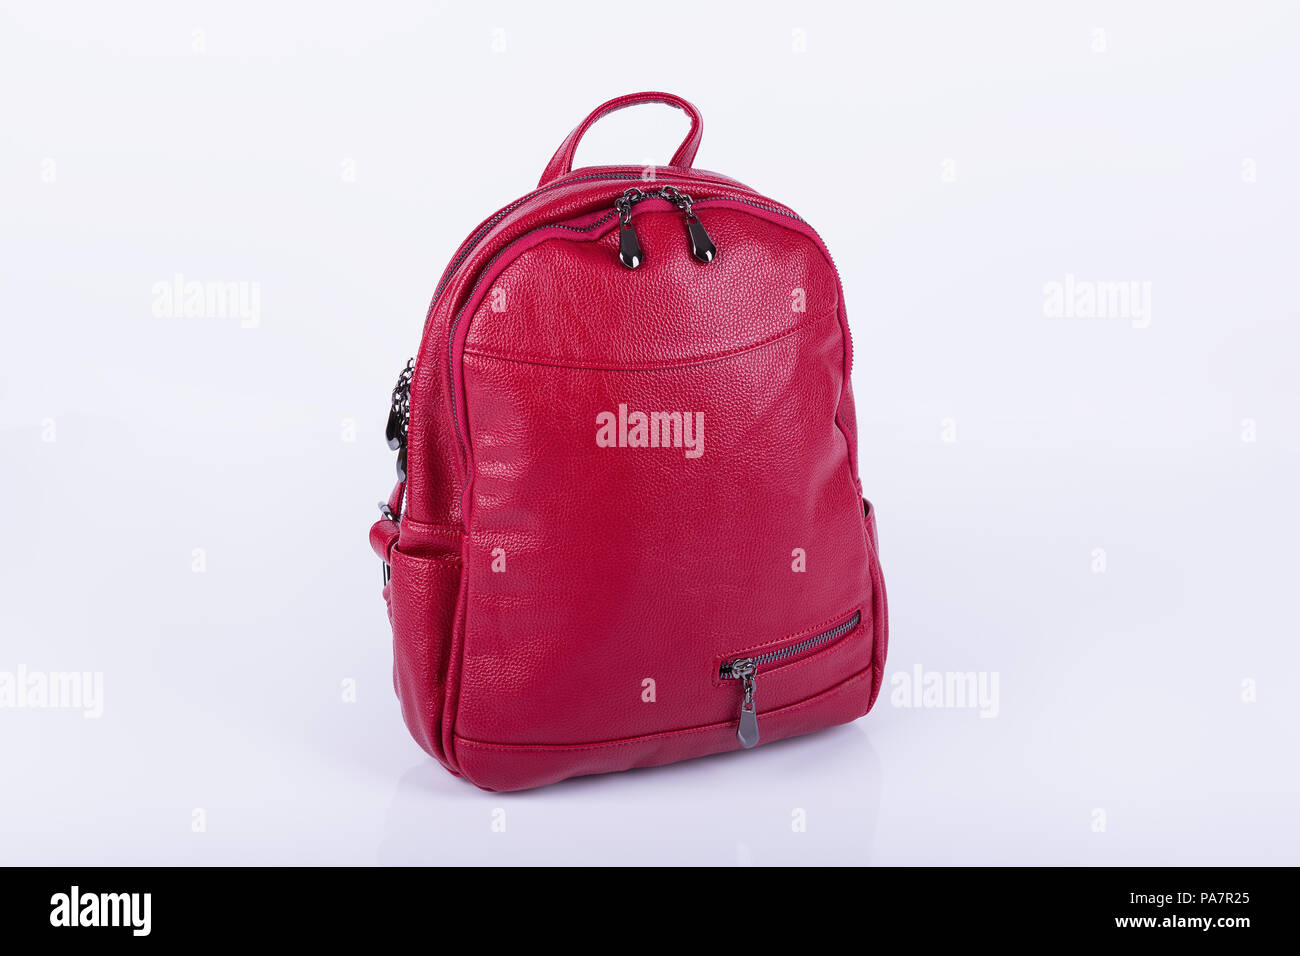 Red leather fashionable female backpack on white background. - Stock Image a71ebd94d7023